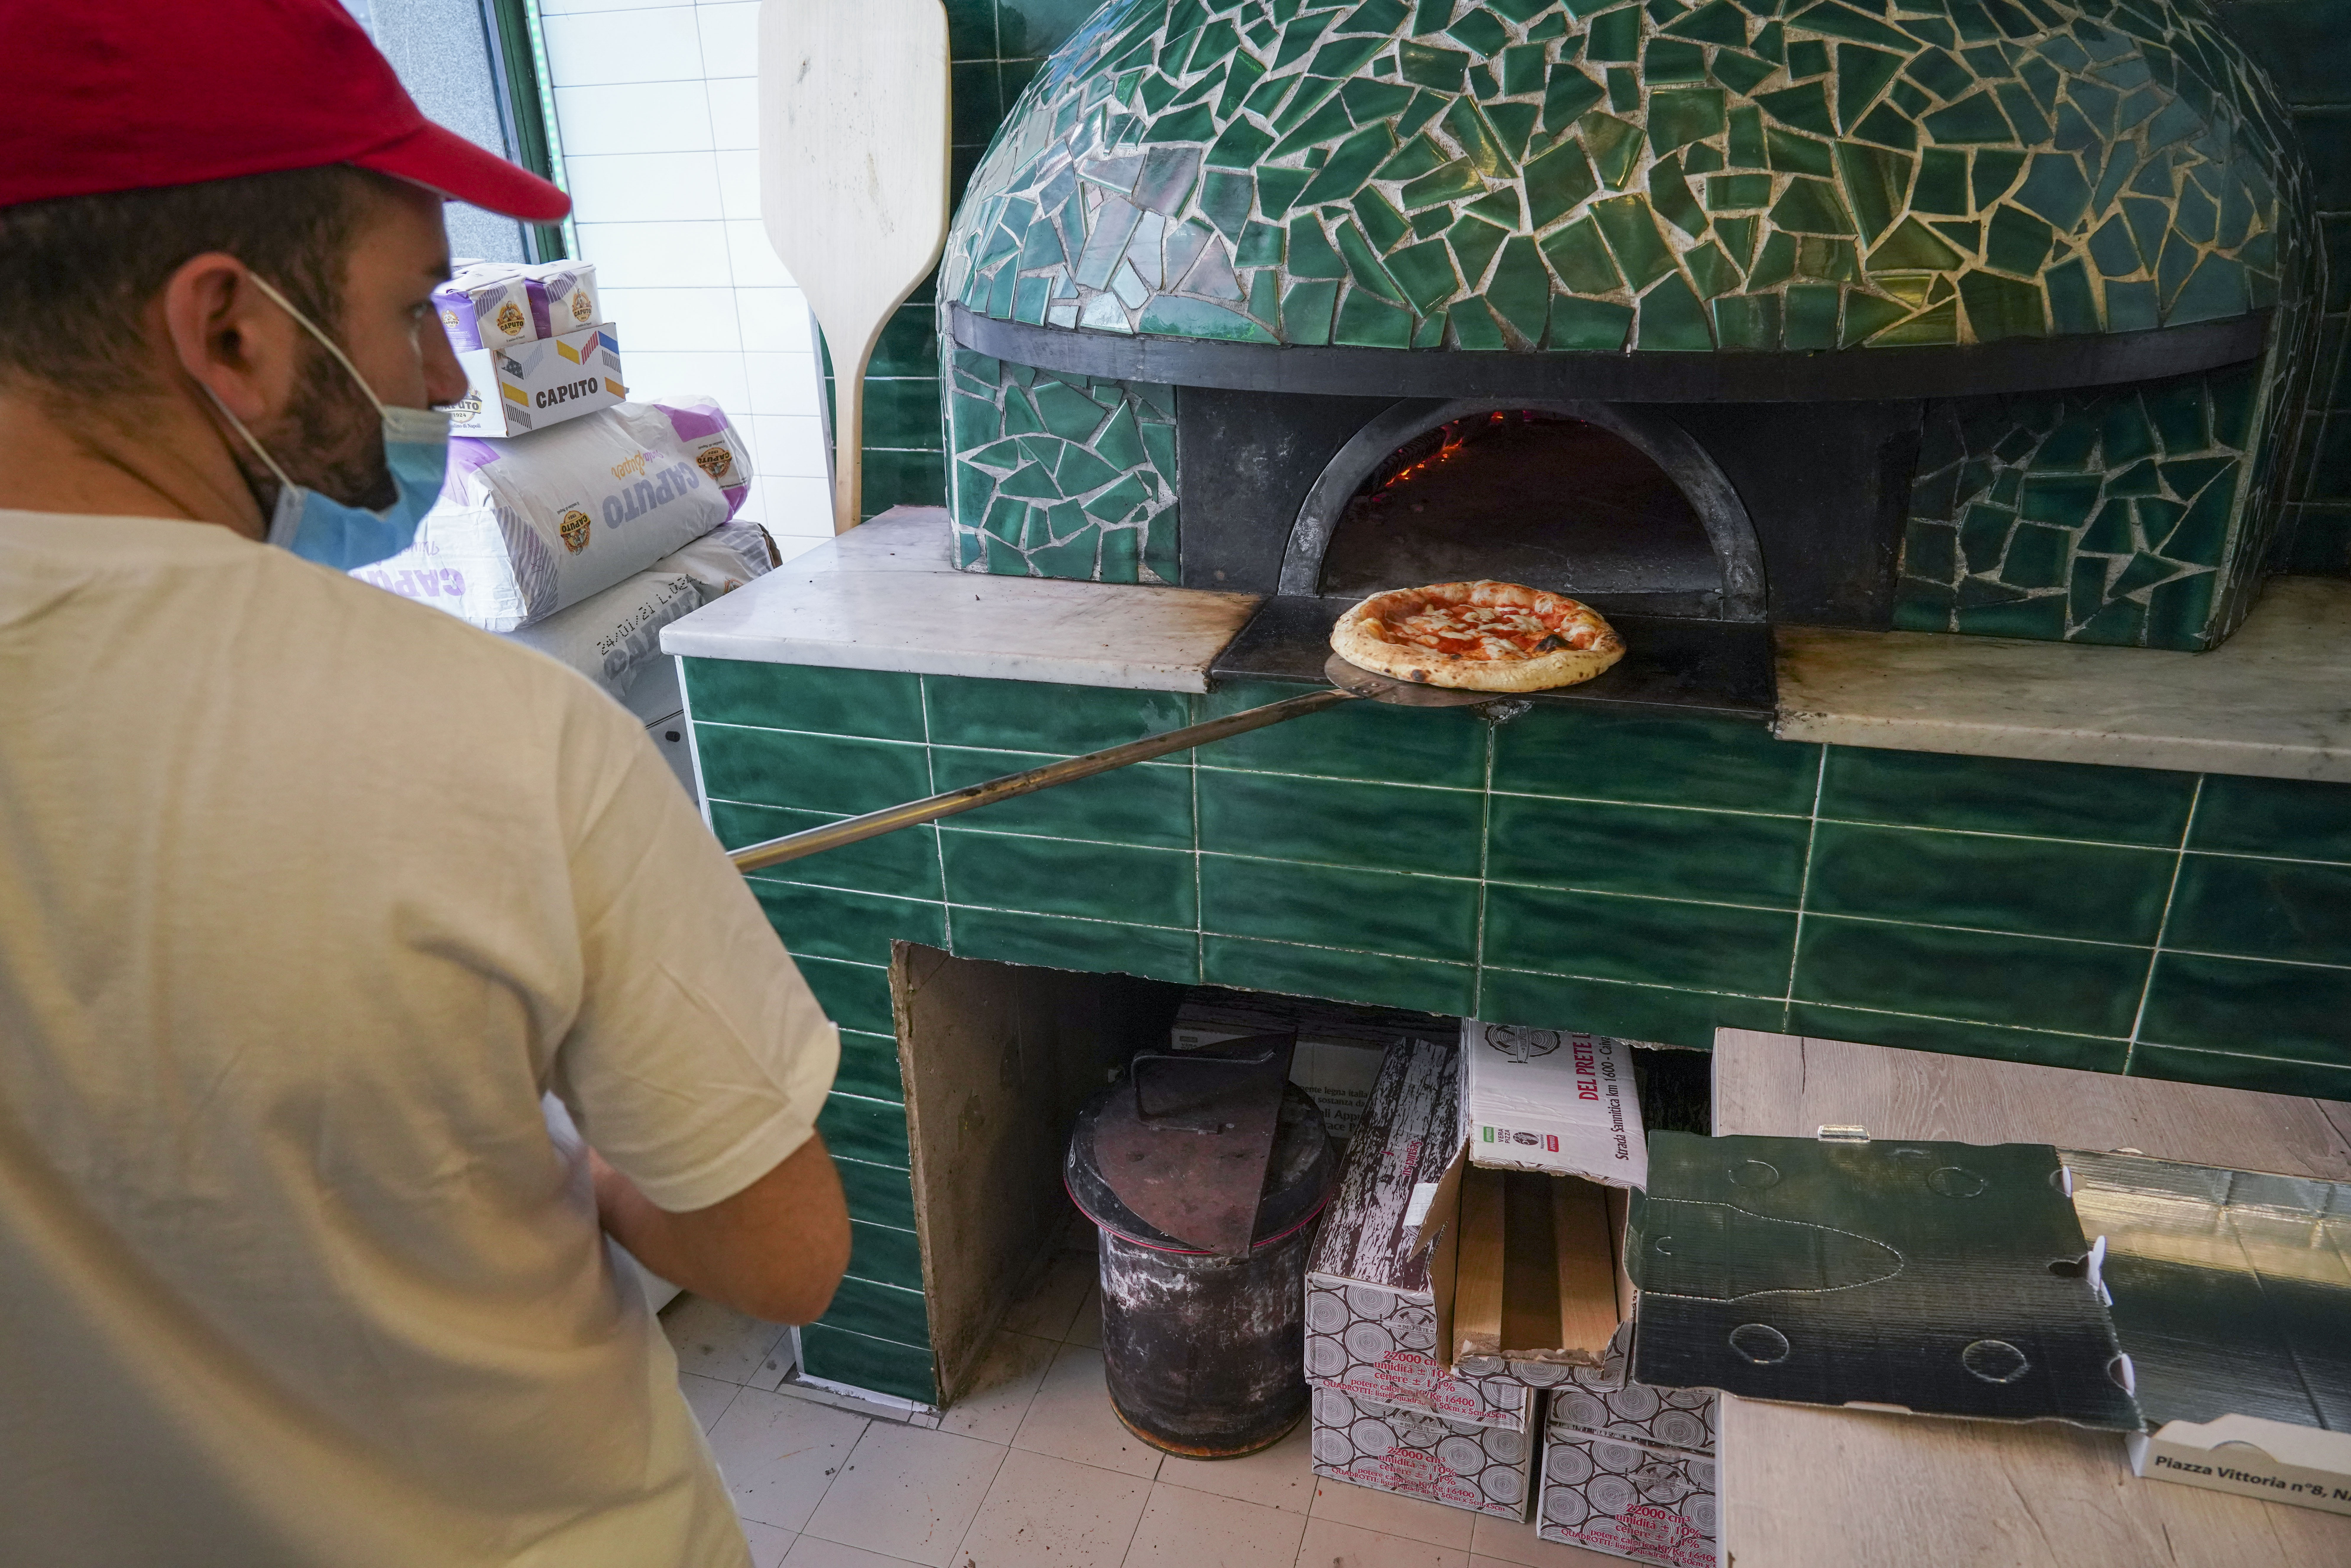 Pizzas are being prepared for home delivery at the Caputo pizzeria in Naples, Monday, April 27, 2020. Region Campania allowed cafes and pizzerias to reopen for delivery Monday, after a long precautionary closure due to the coronavirus outbreak.